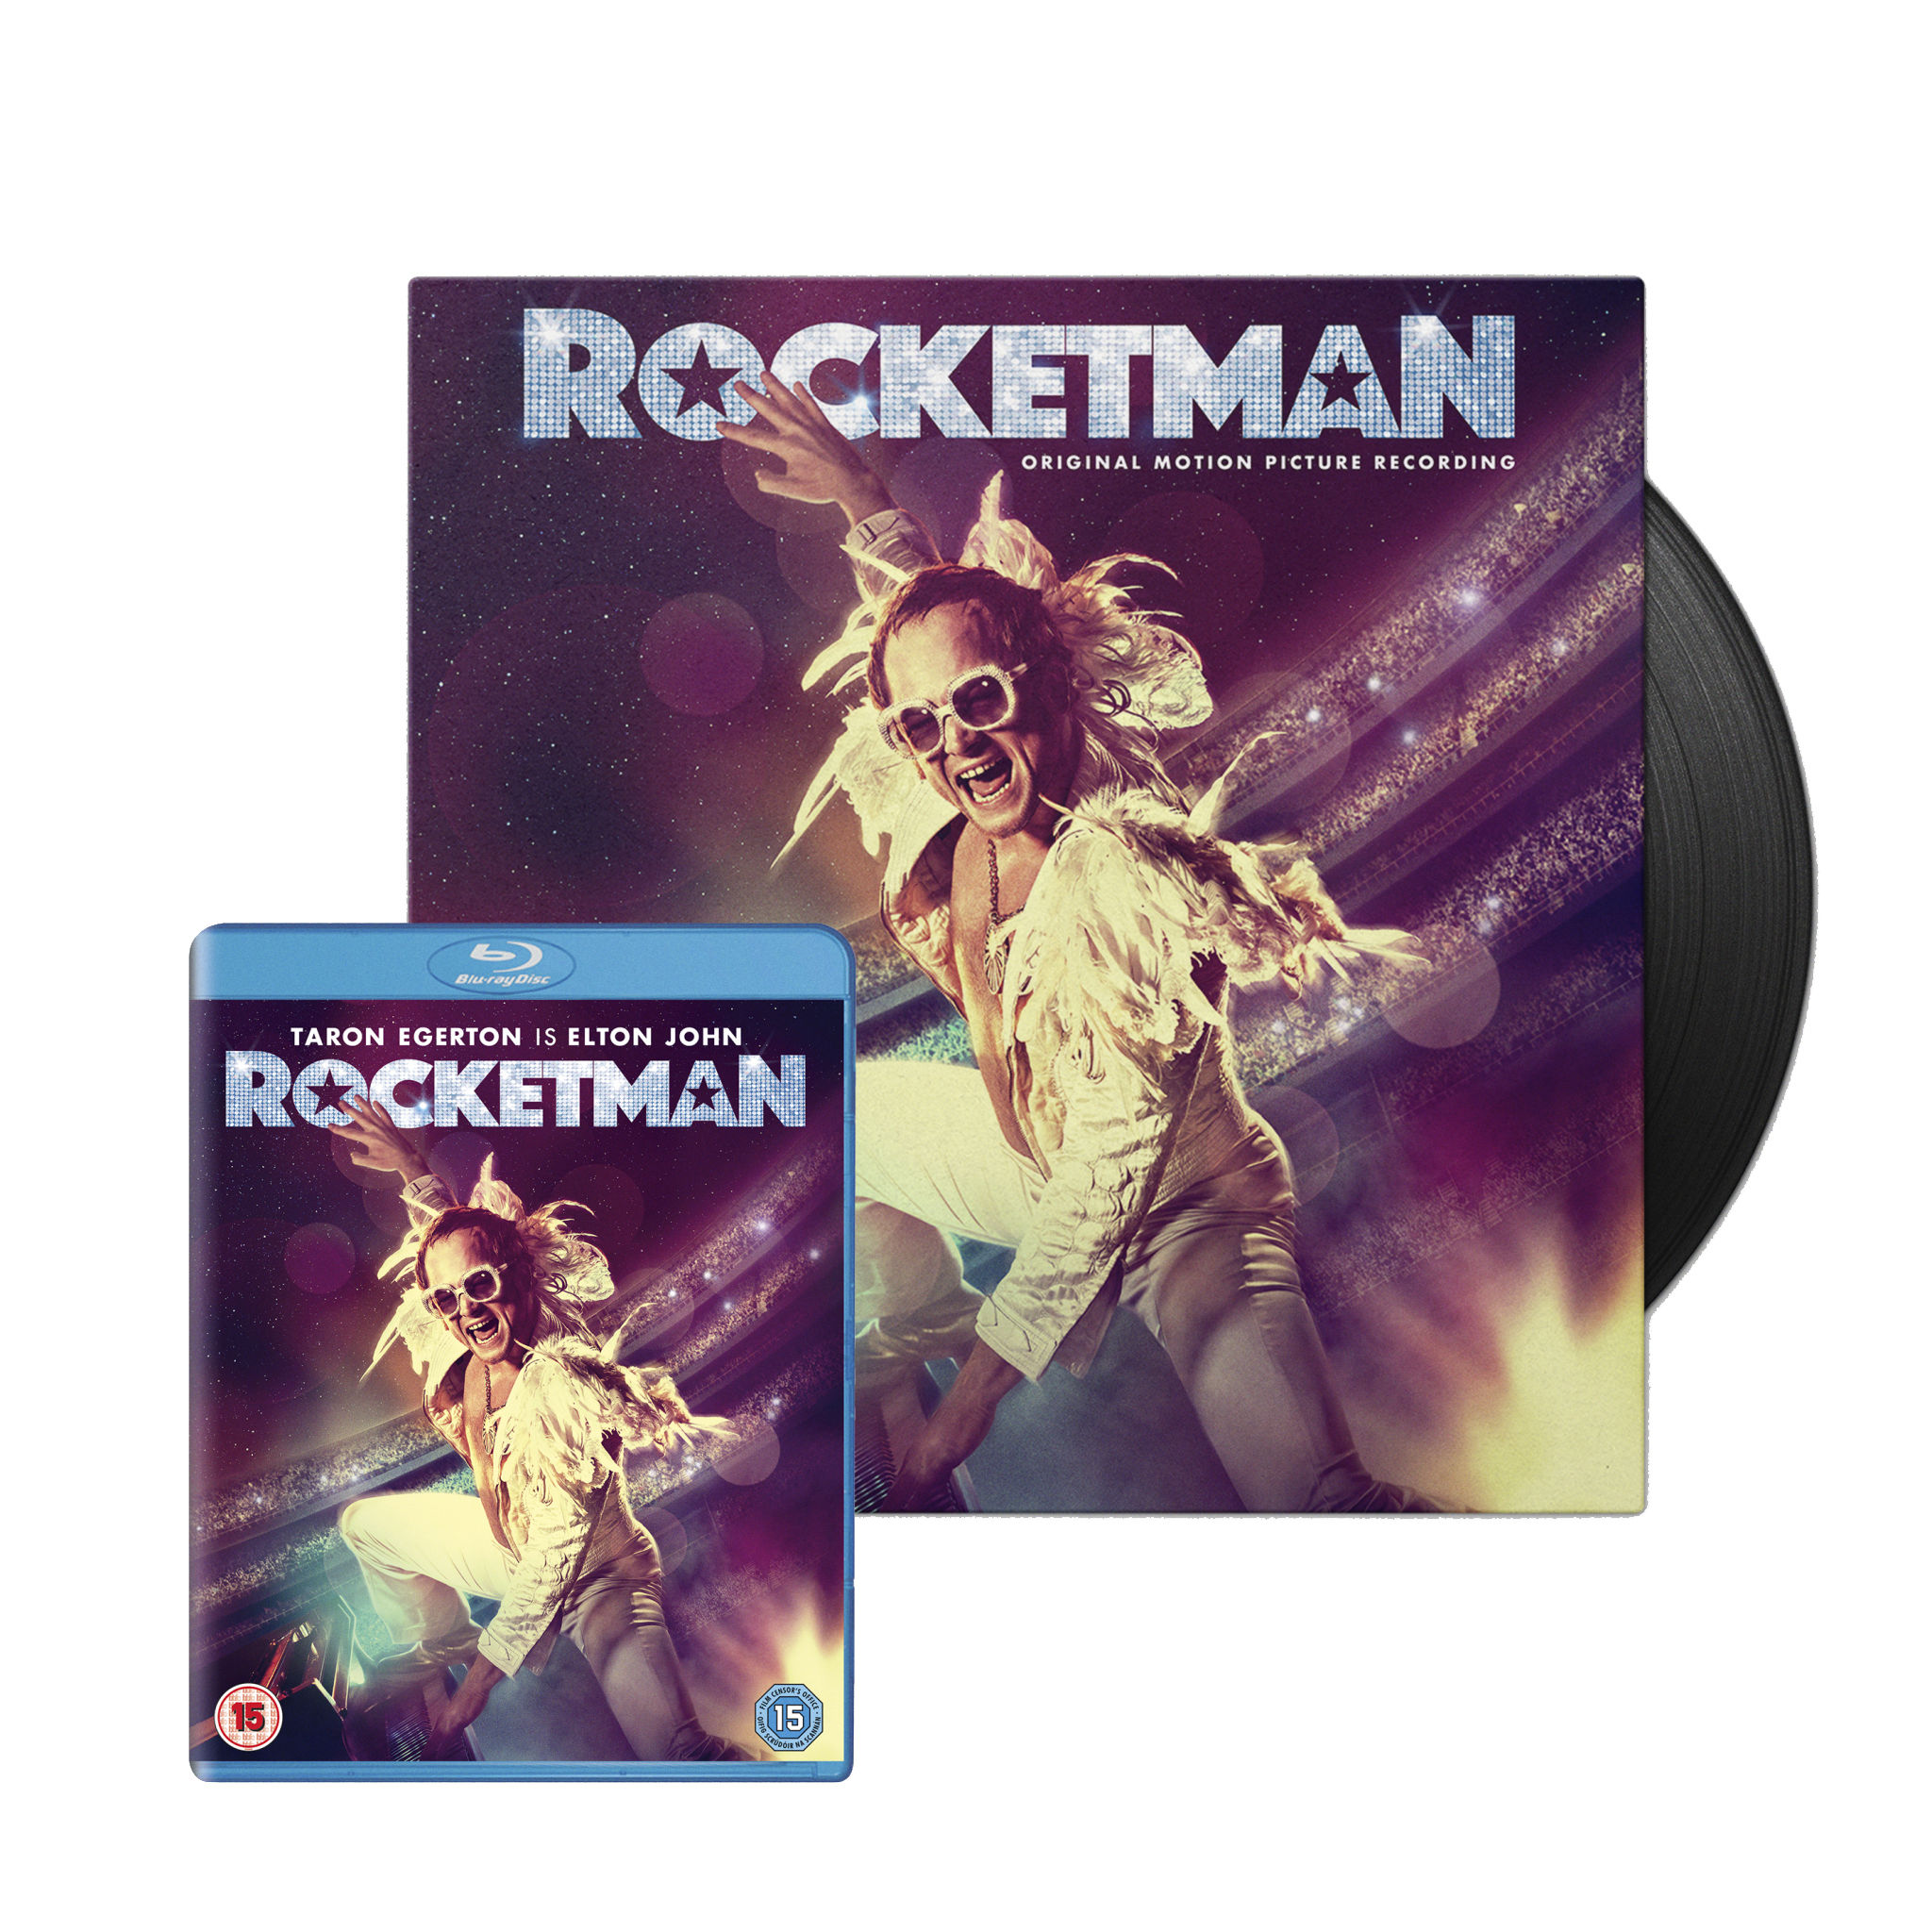 Elton John: Rocketman Blu-ray & LP